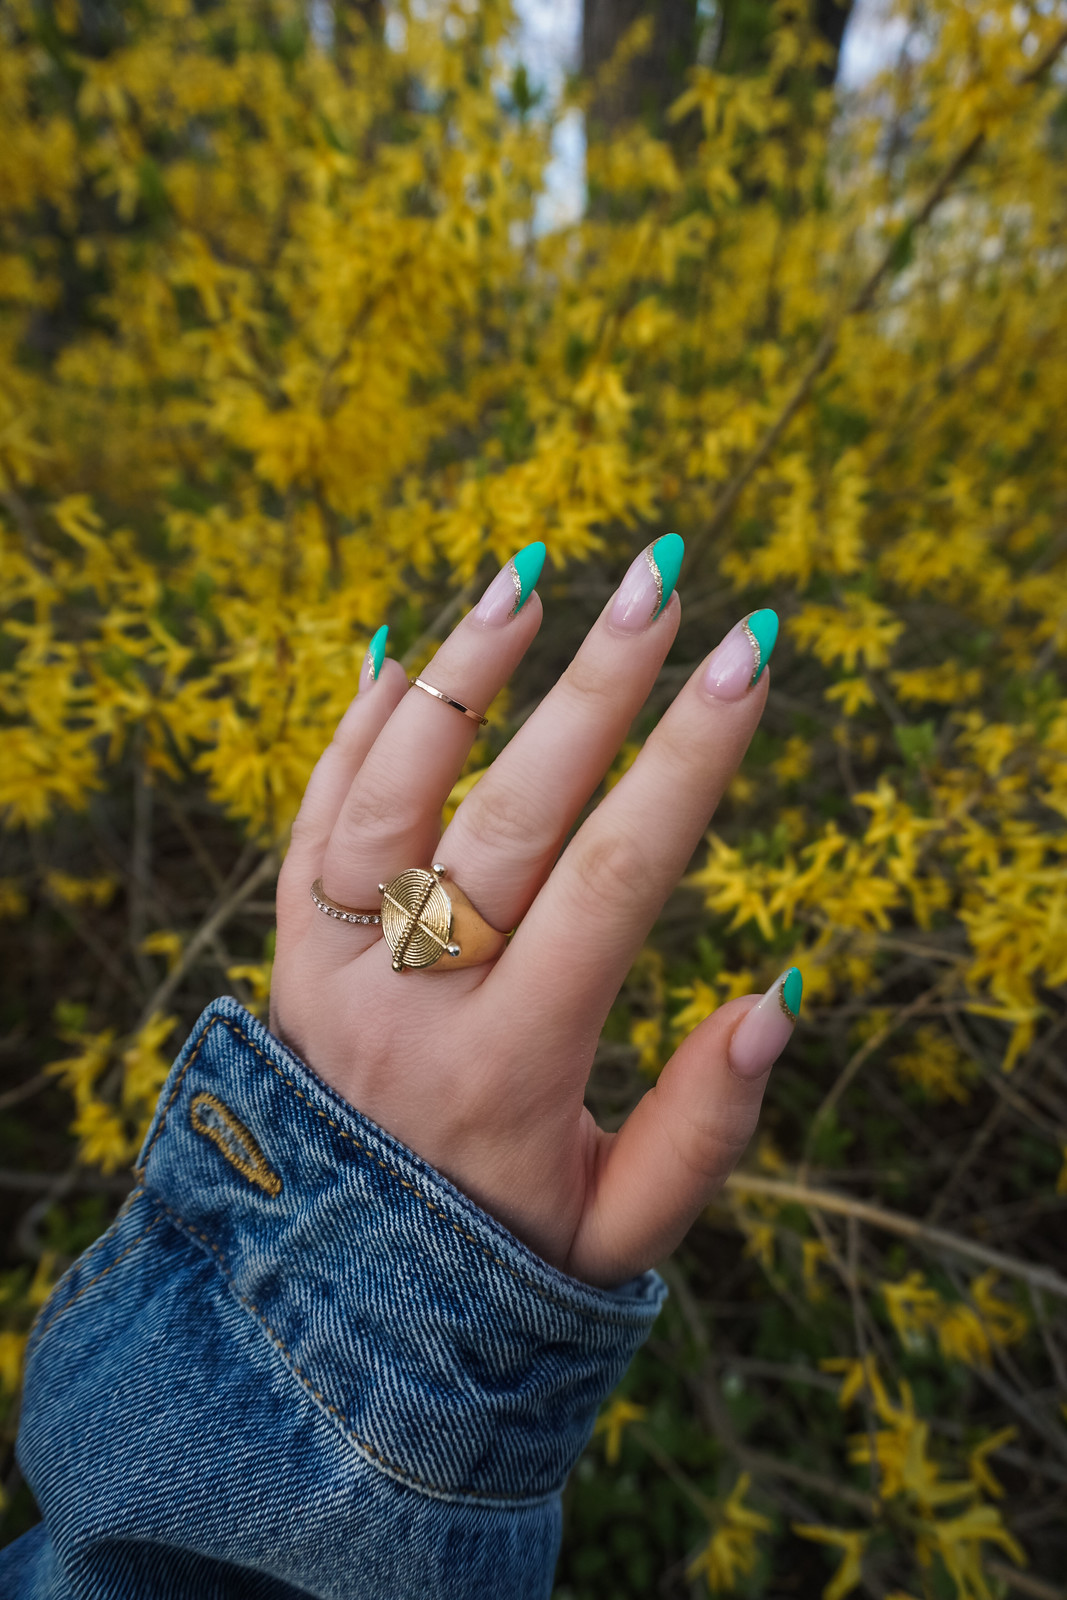 Manicure of the Month: Green Summer Nails | Green Manicure | Colored French Manicure | Acrylic Nails | Almond Nails | Cute Summer Nails | Fun Summer Nails | Spring Nail Ideas